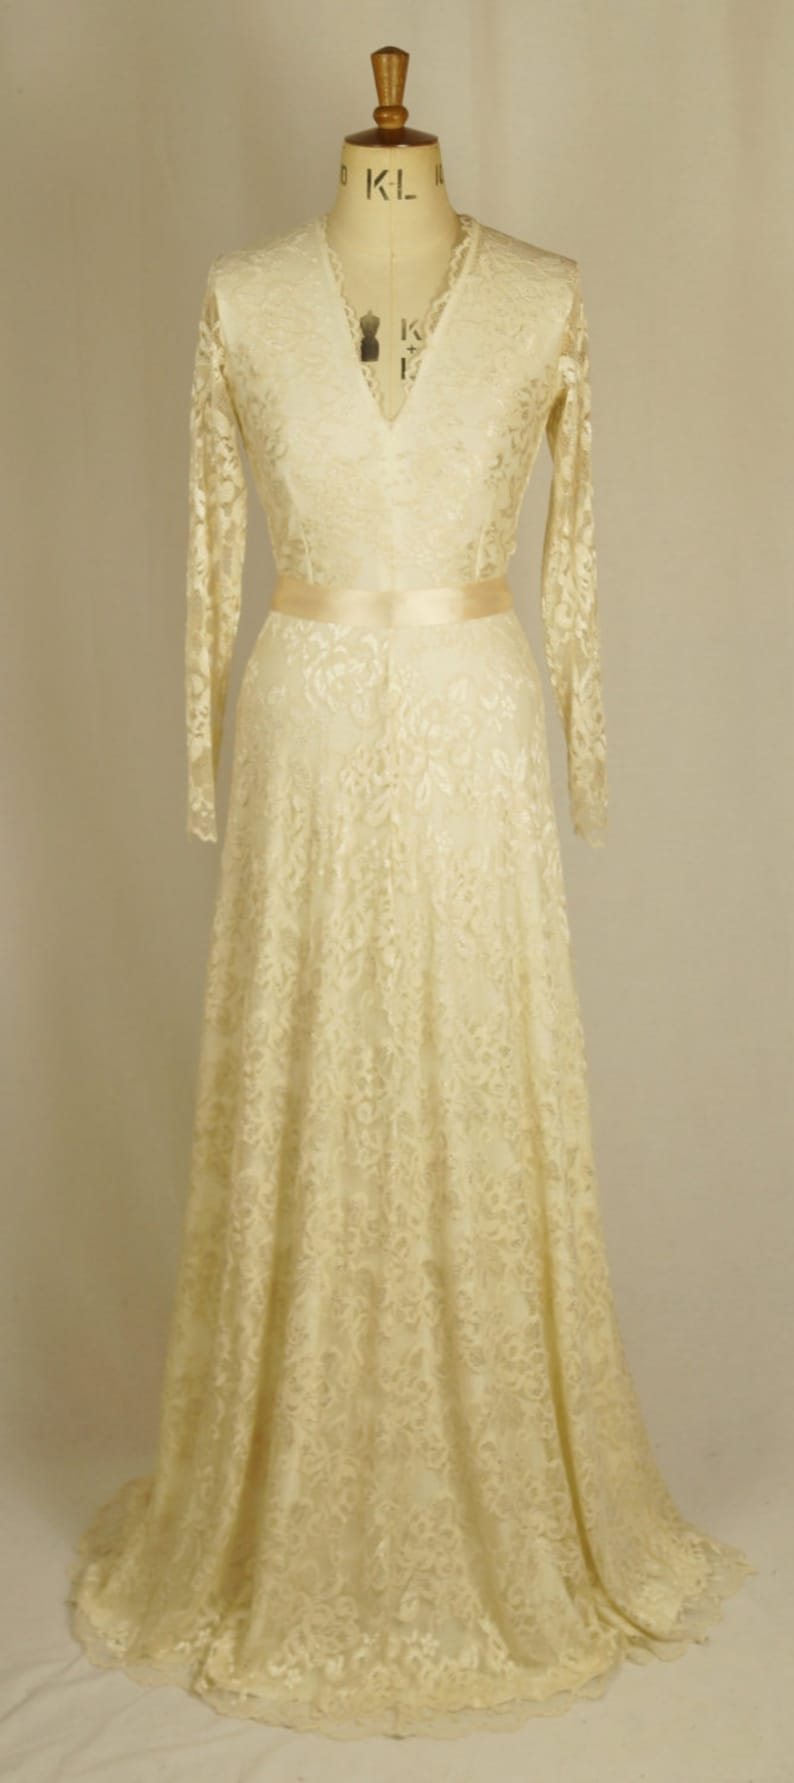 1940s Style Wedding Dresses | Classic Wedding Dresses Baylis & Knight Cream Nude Cafe Latte LACE Princess Kate Middleton Long Sleeve MAXI Flared Skirt Low Cut Ball Gown Wedding $229.46 AT vintagedancer.com